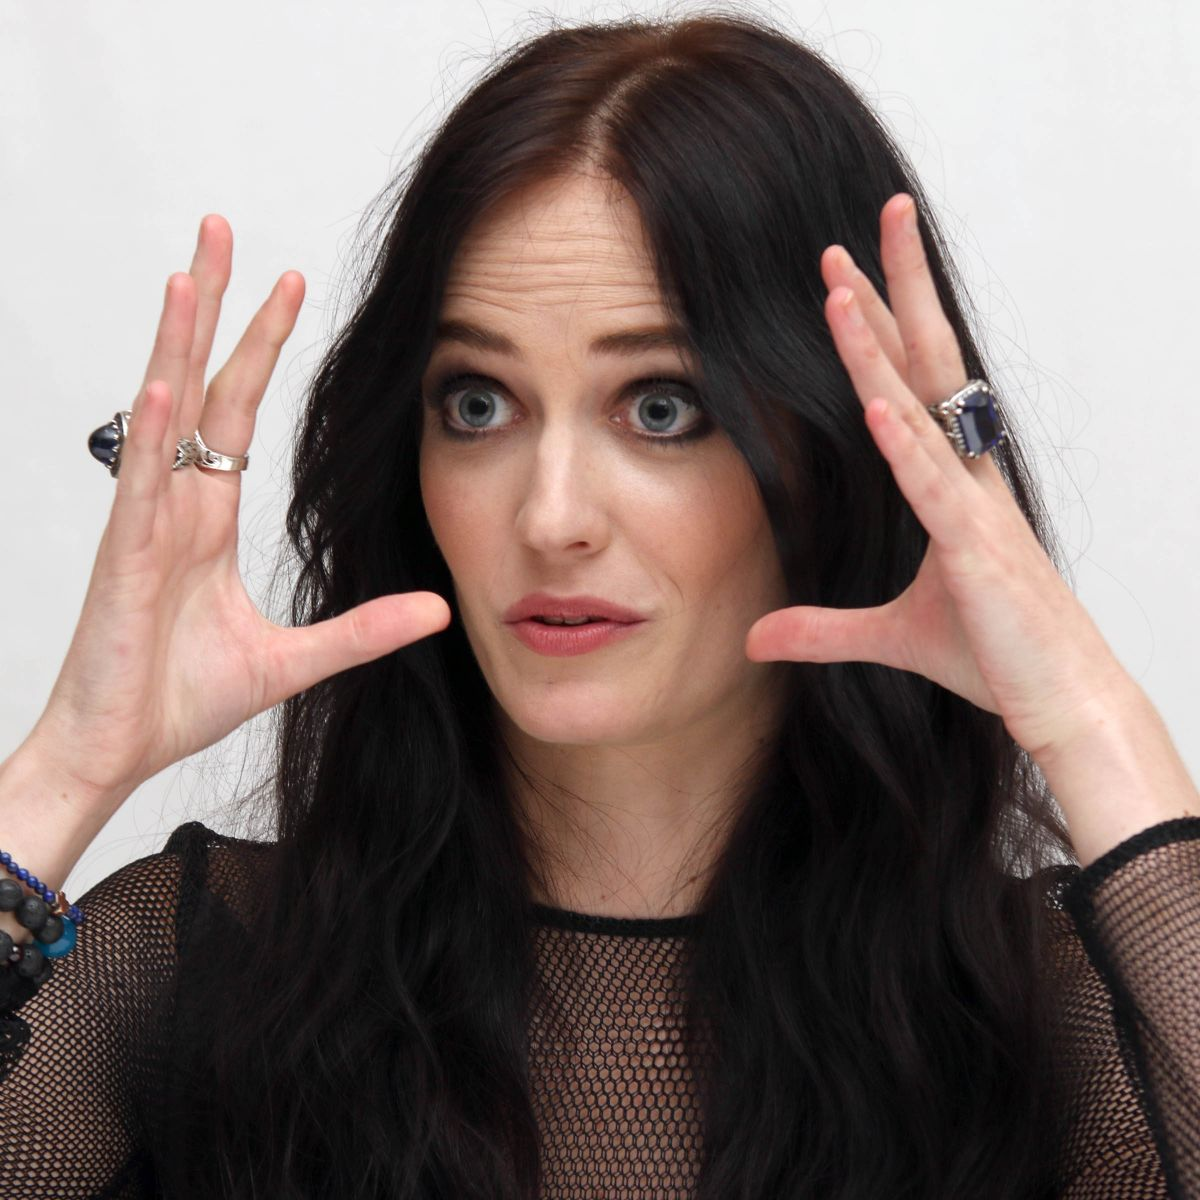 eva-green-sin-city-a-dame-to-kill-for-press-conference-in-beverly-hills_1.jpg